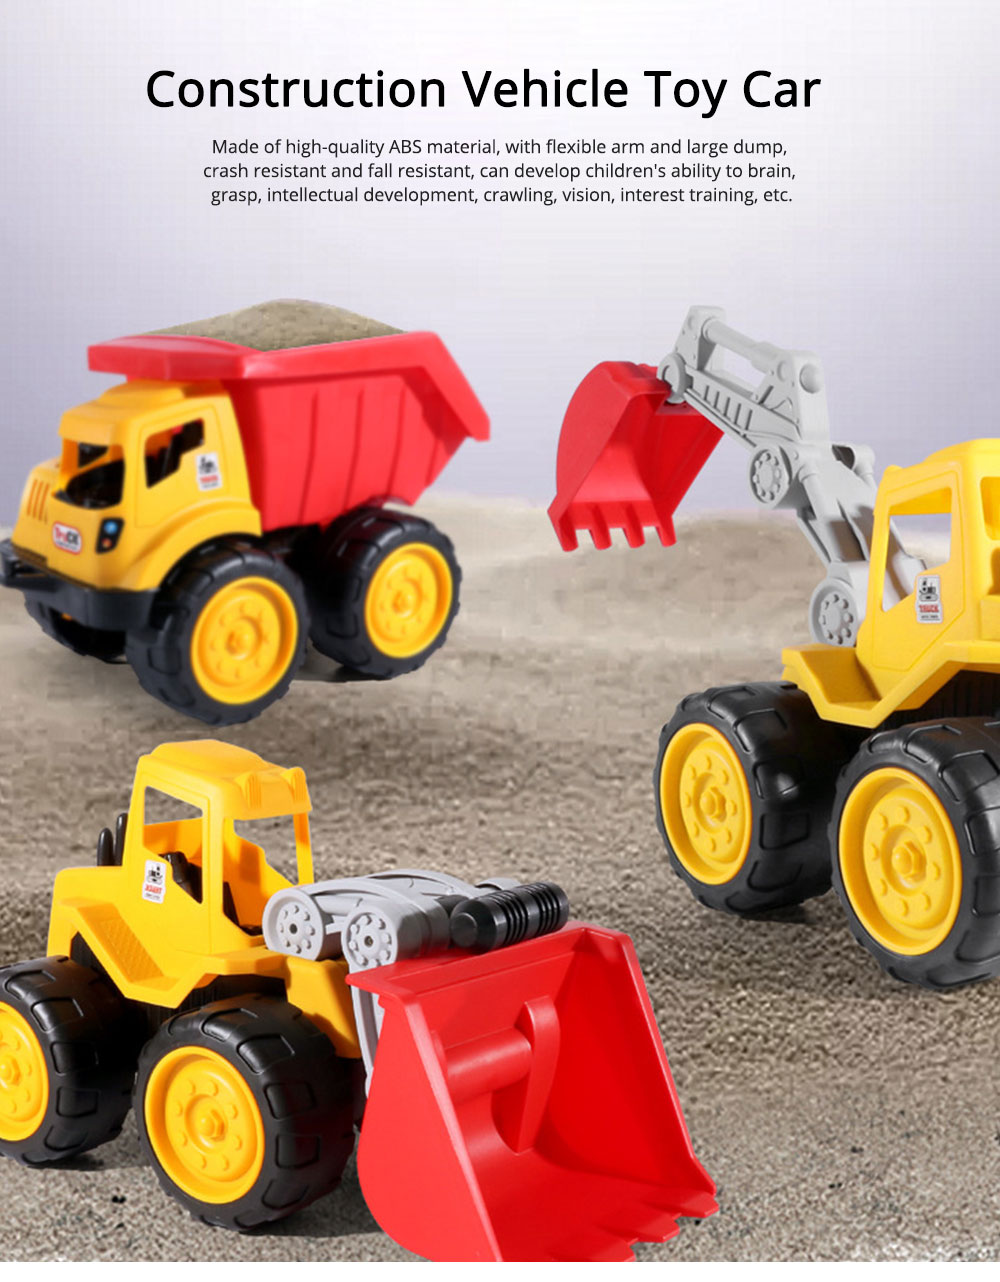 Children Toy Car Simulation Engineering Truck, Construction Vehicle Toy Car, Children's Toy Bulldozer 0